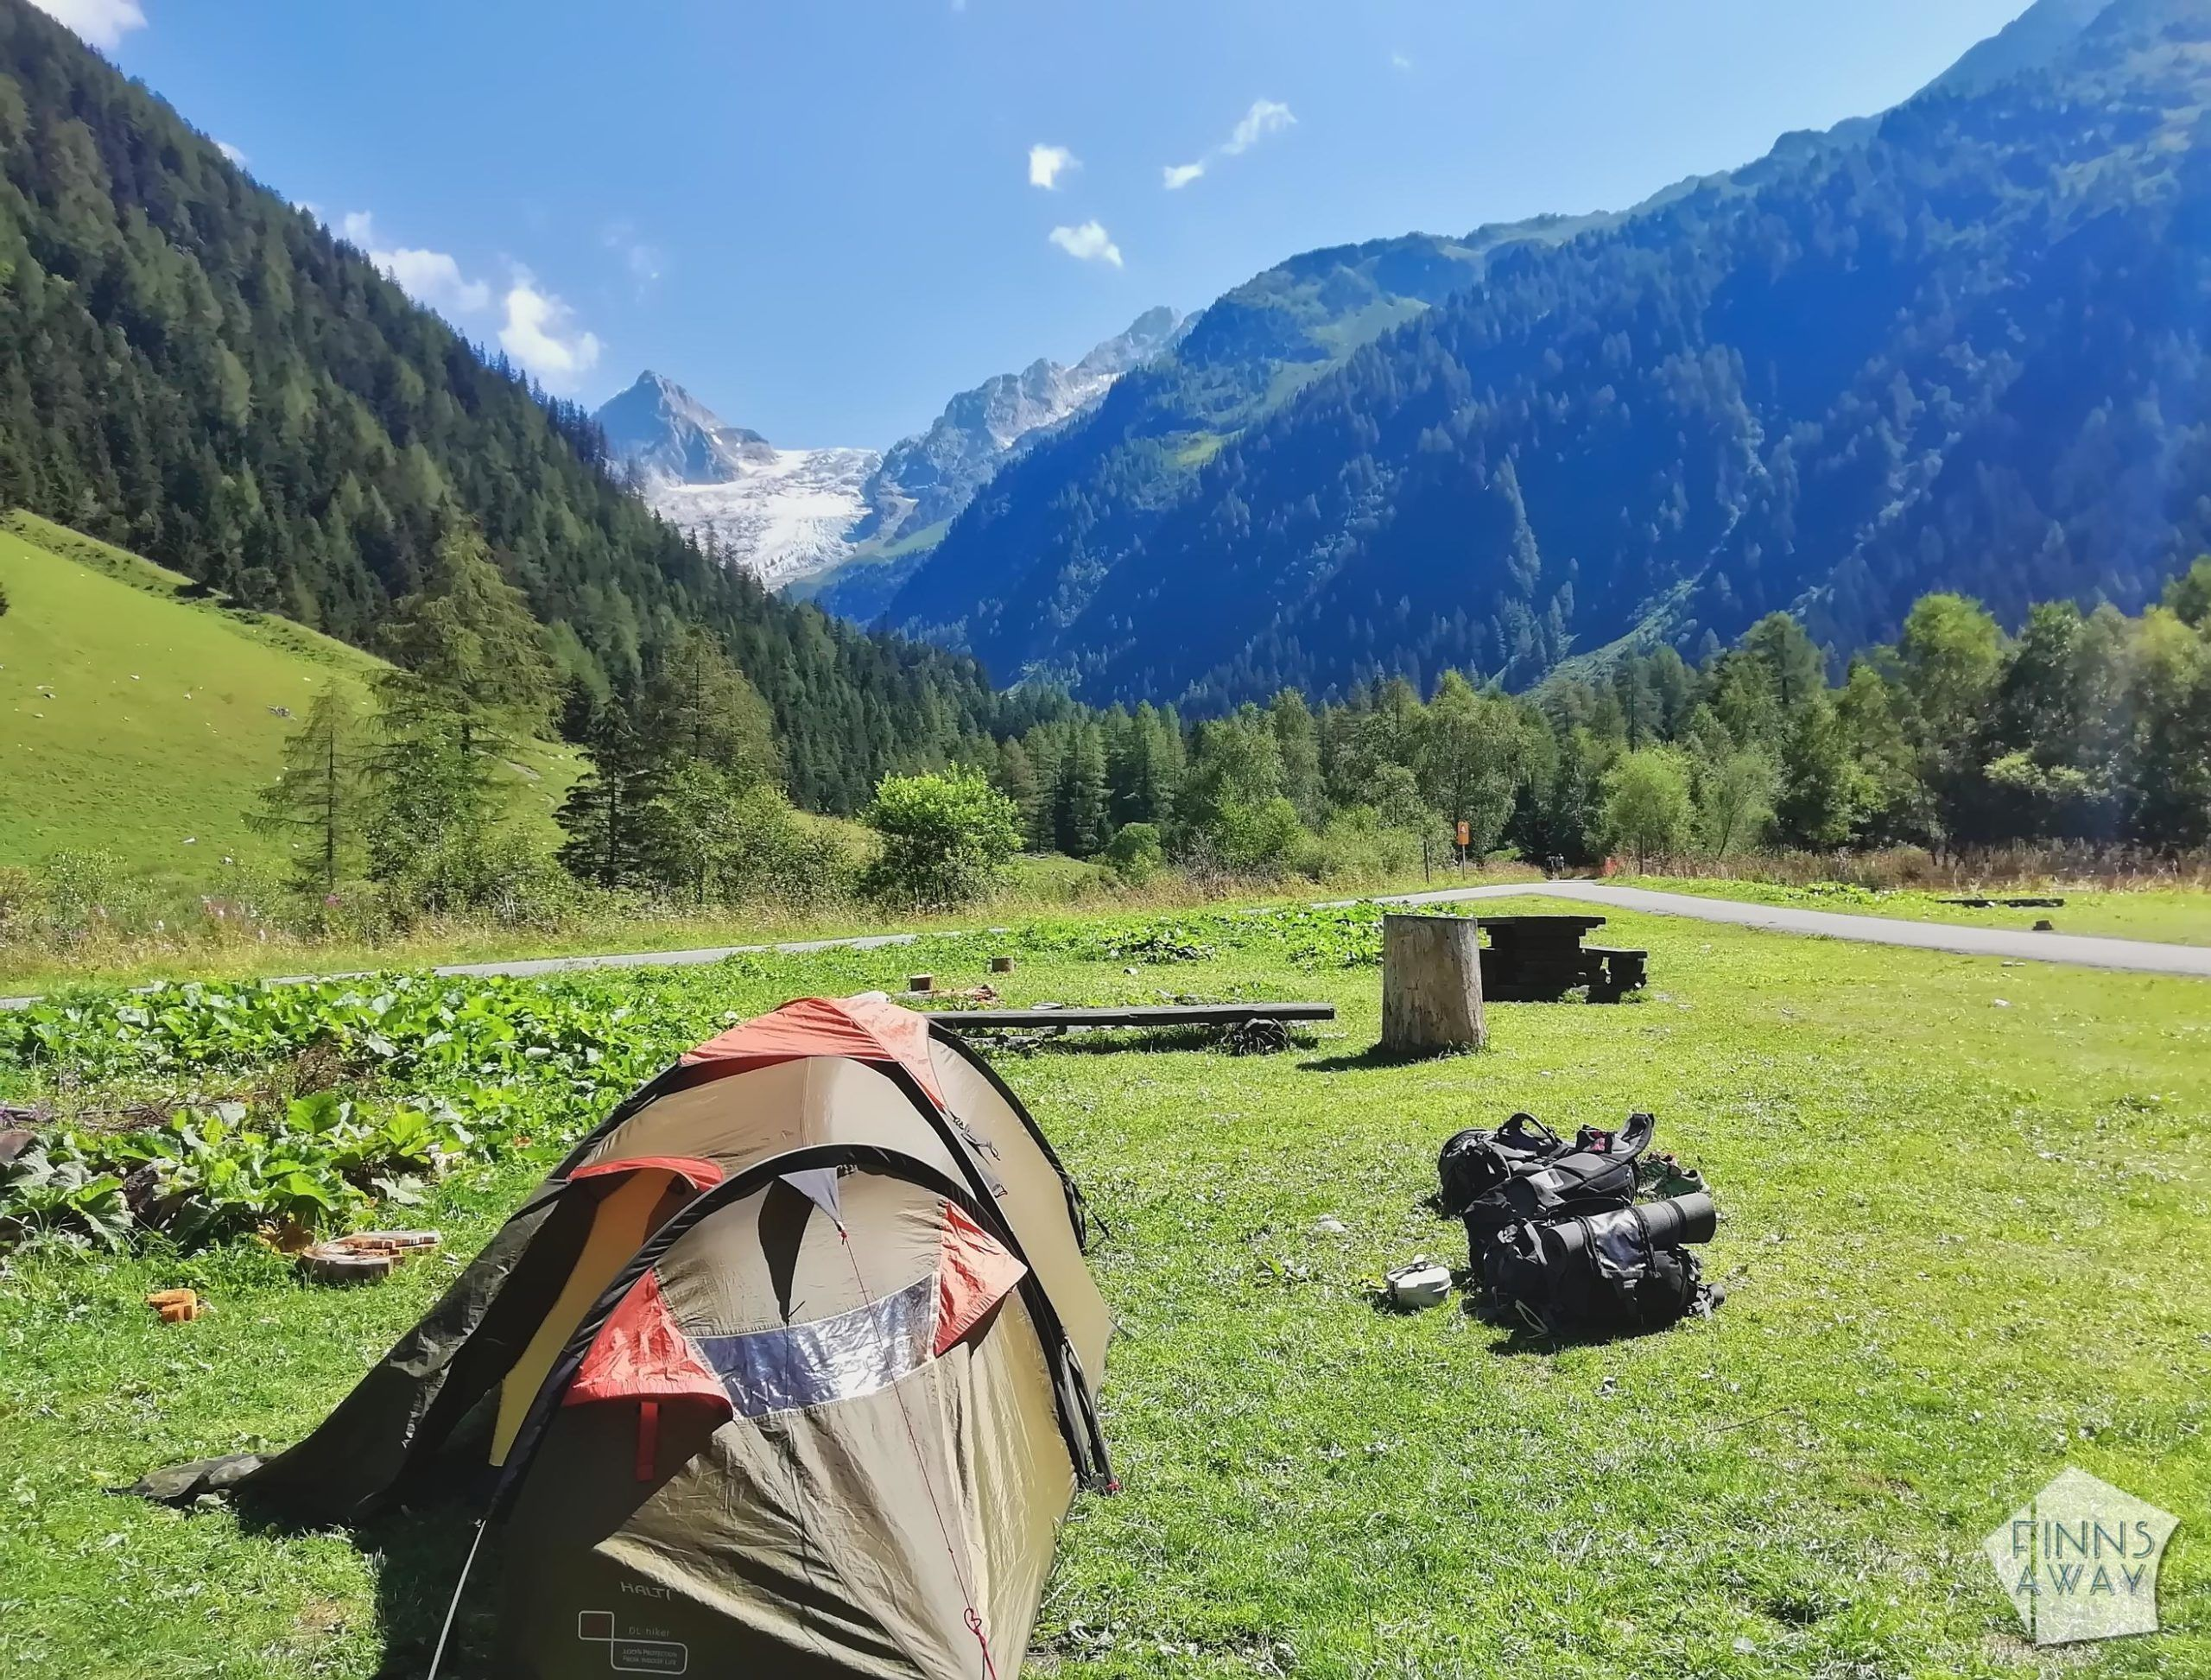 Camping Le Peuty | Hiking and camping Tour du Mont Blanc mountain trail in the Alps | FinnsAway travel blog